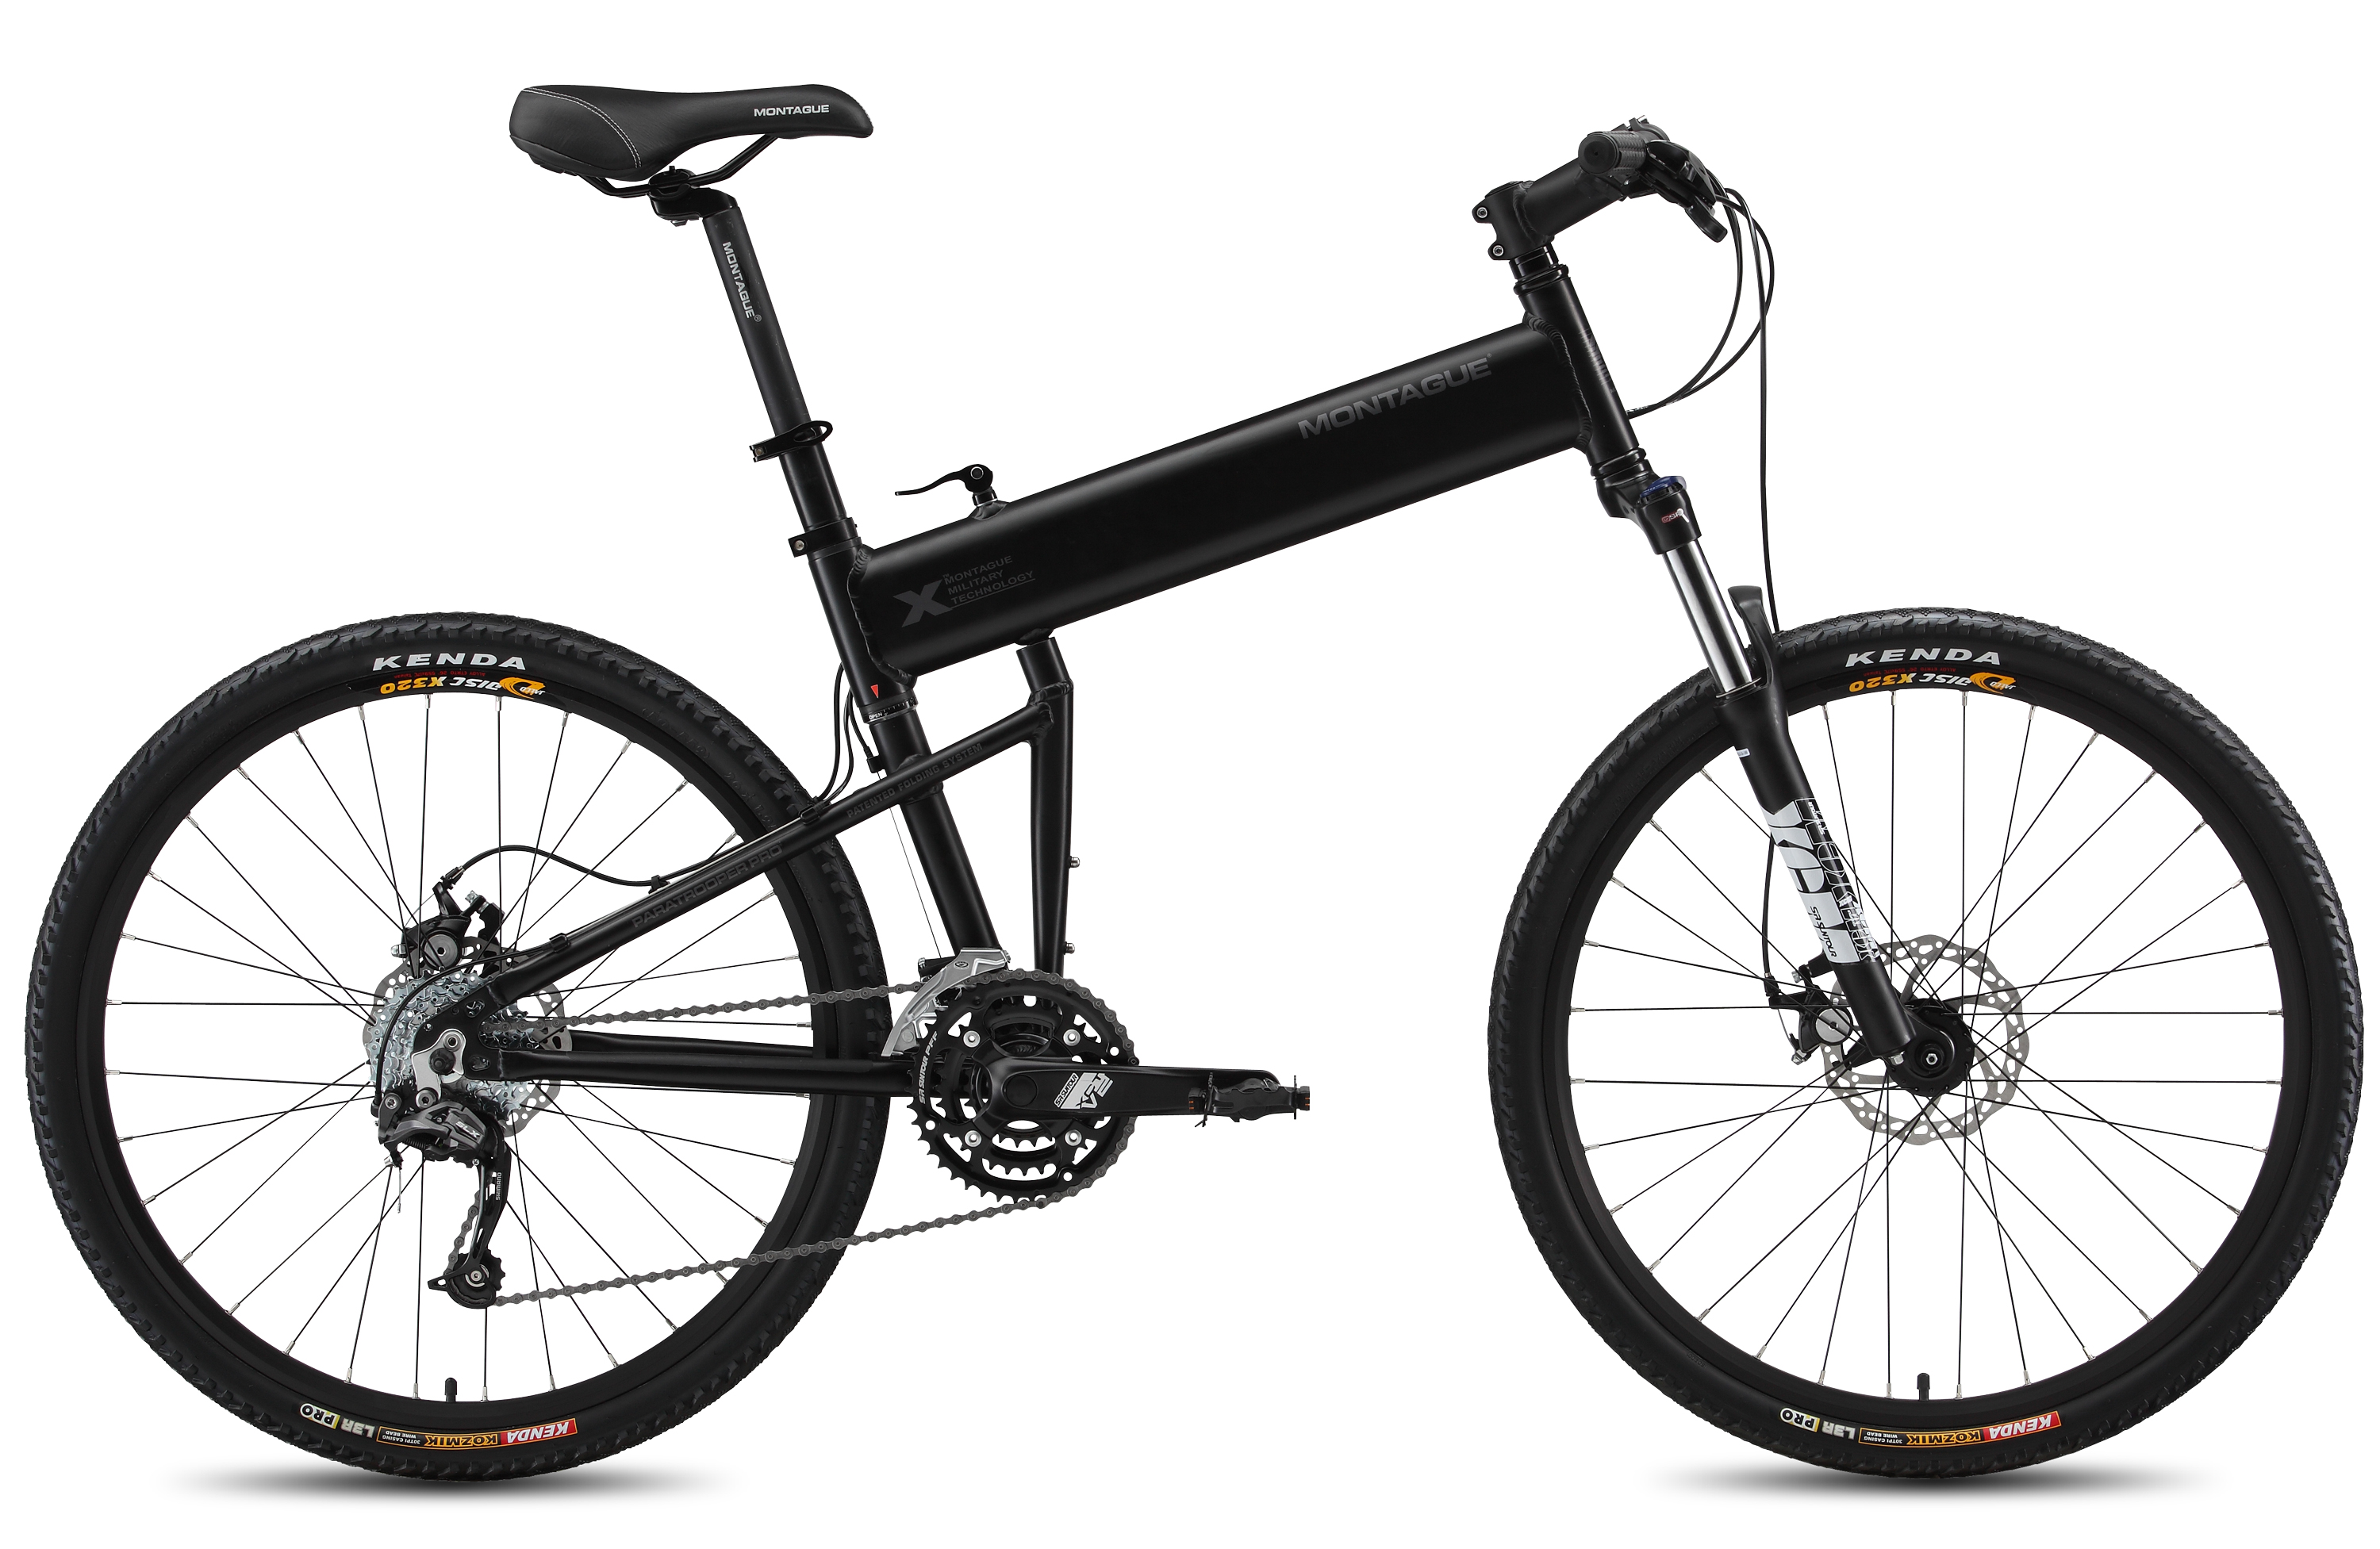 Paratrooper Pro Mountain Folding Bike